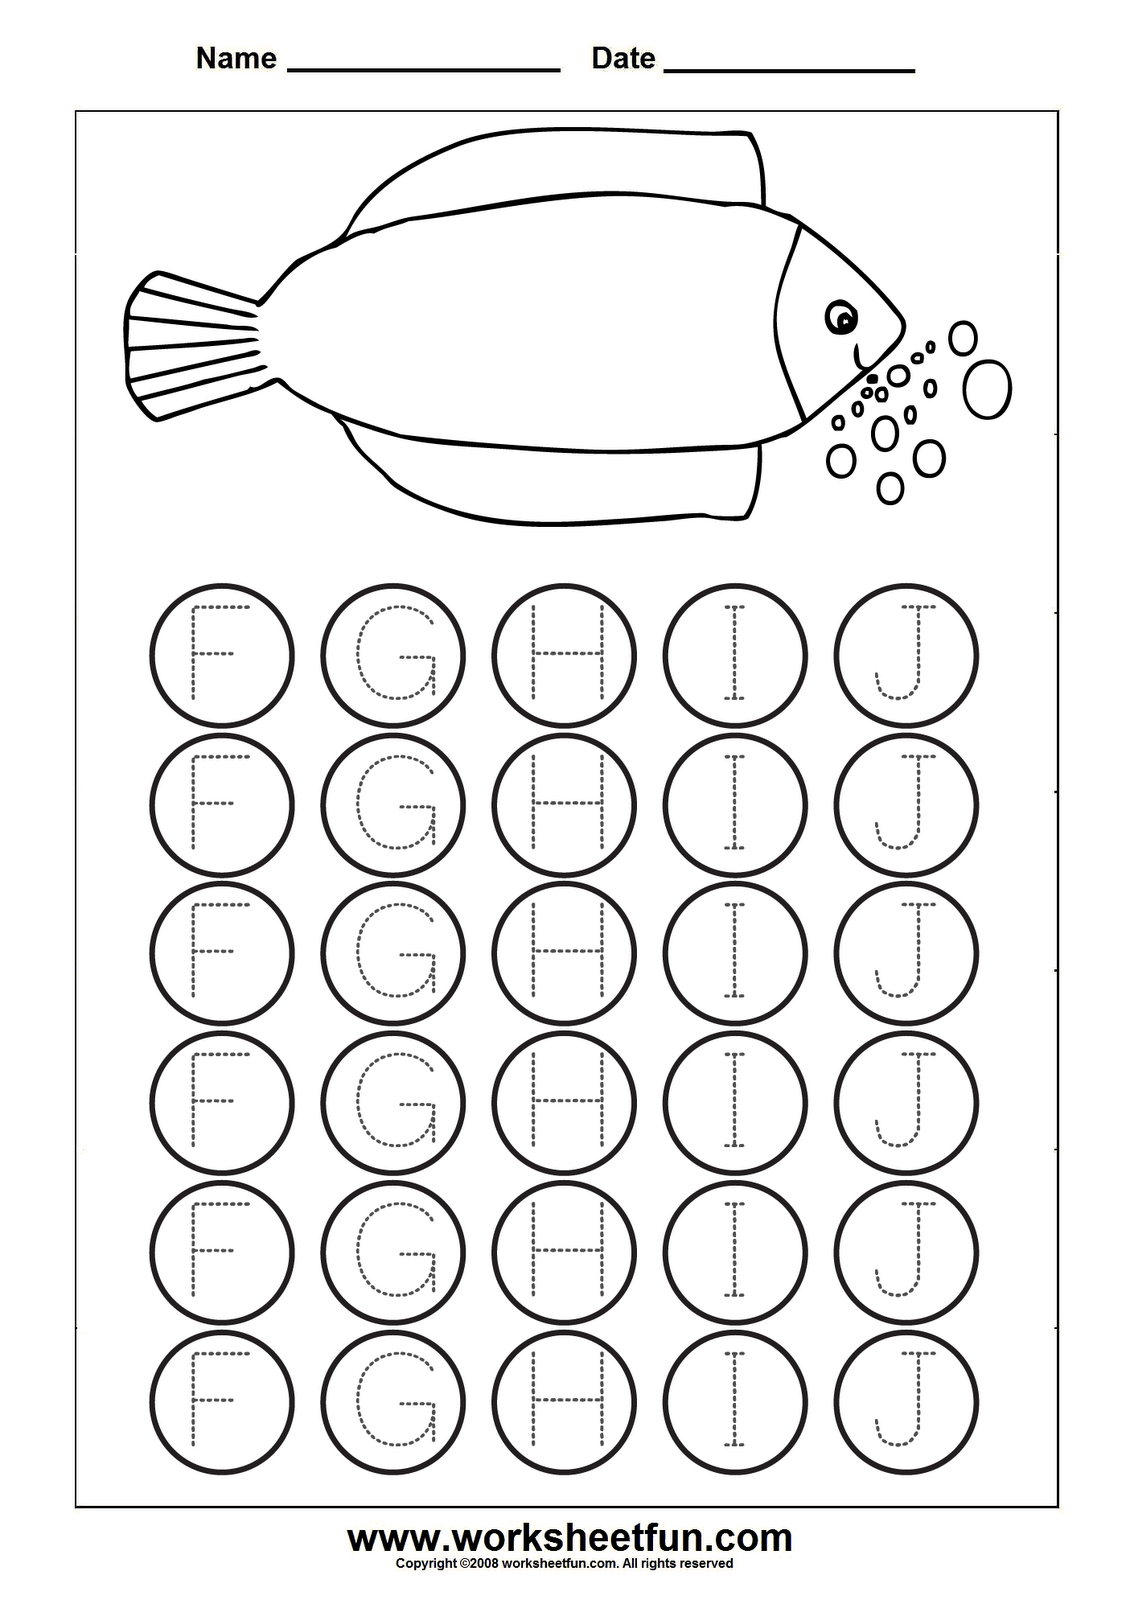 Image Detail For Letter Tracing Worksheets For Kindergarten Capital And Small Letters Numbers Kindergarten Preschool Math Numbers Preschool [ 1600 x 1130 Pixel ]